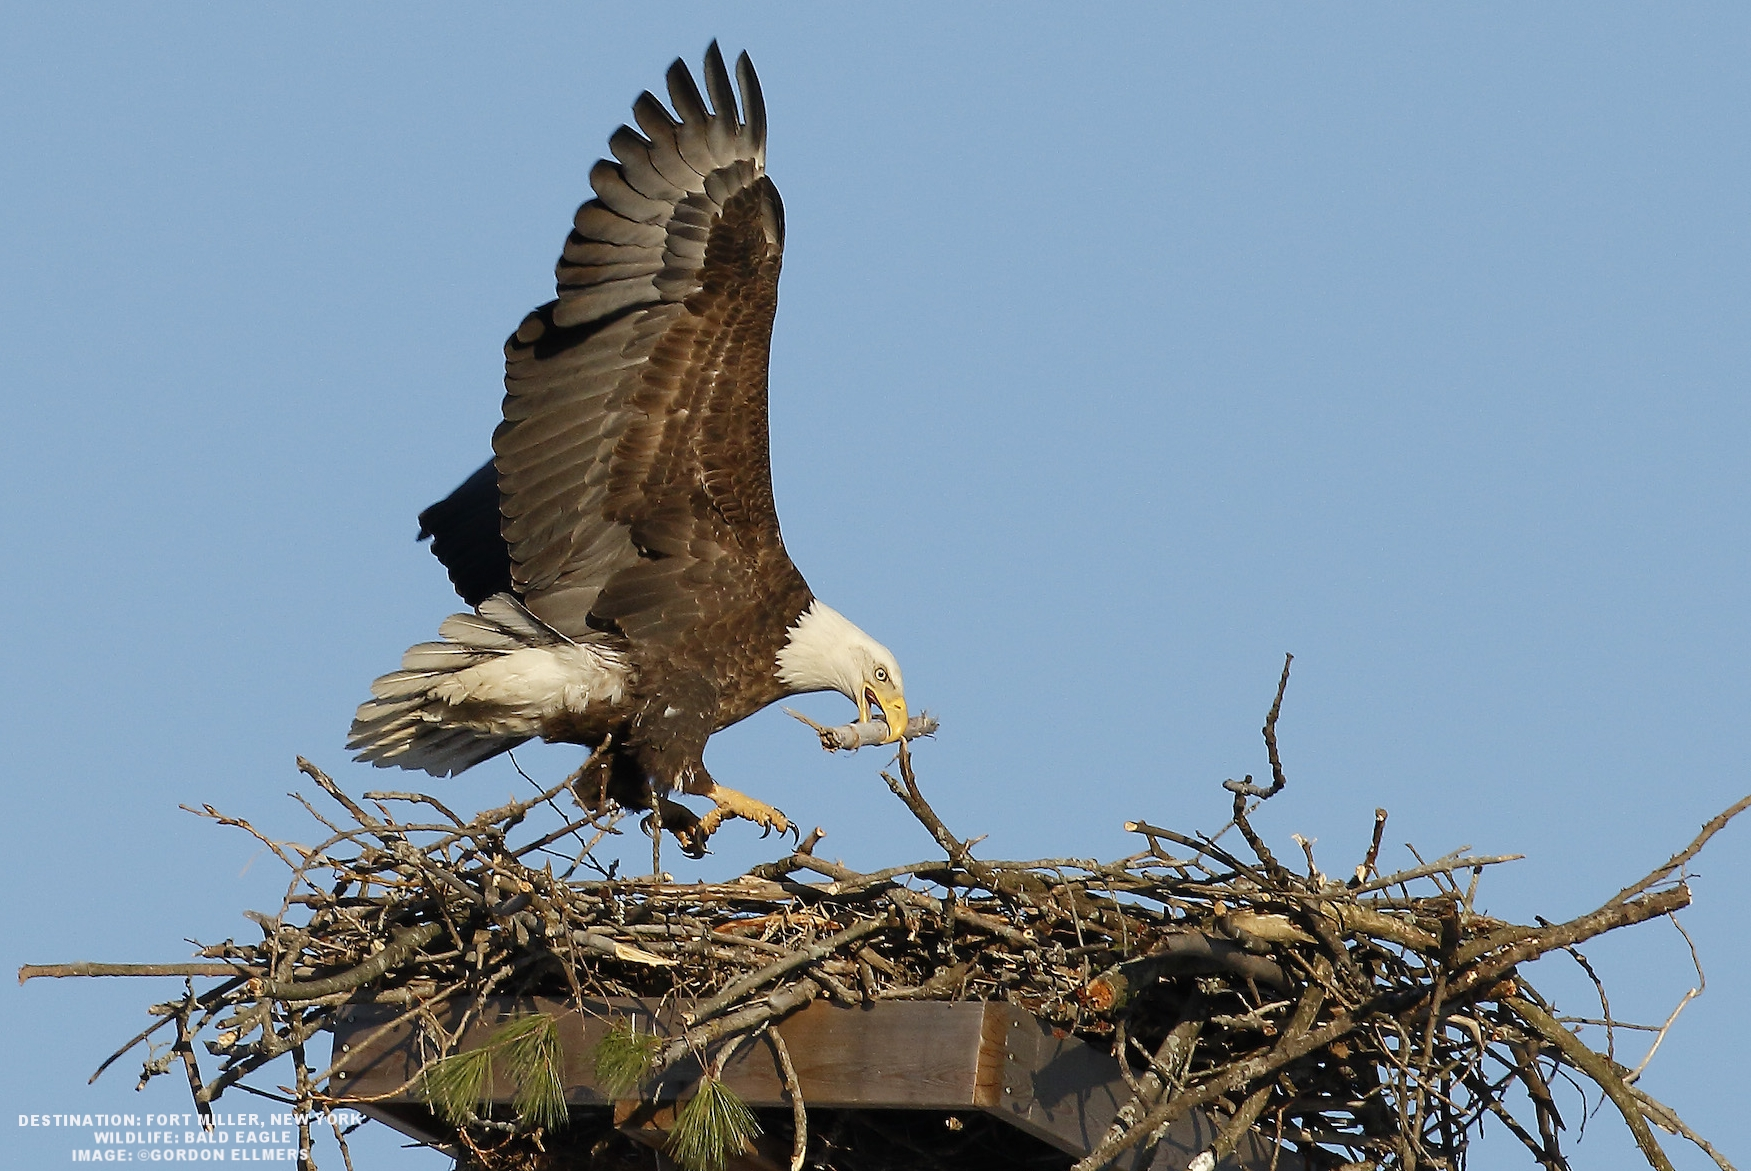 A BALD EAGLE'S NEST CAN WEIGH HUNDREDS OF POUNDS. PLATFORMS PLACED IN THEIR HABITAT REGIONS, LIKE THIS ONE IN FORT MILLER, NEW YORK PROTECT AND ENCOURAGE THE BIRDS. OSPREYS ALSO LIKE THESE PLATFORMS, THE COMPETITION MAKES FOR FABULOUS ARIEL DISPLAYS. IMAGE: GORDON ELLMERS.